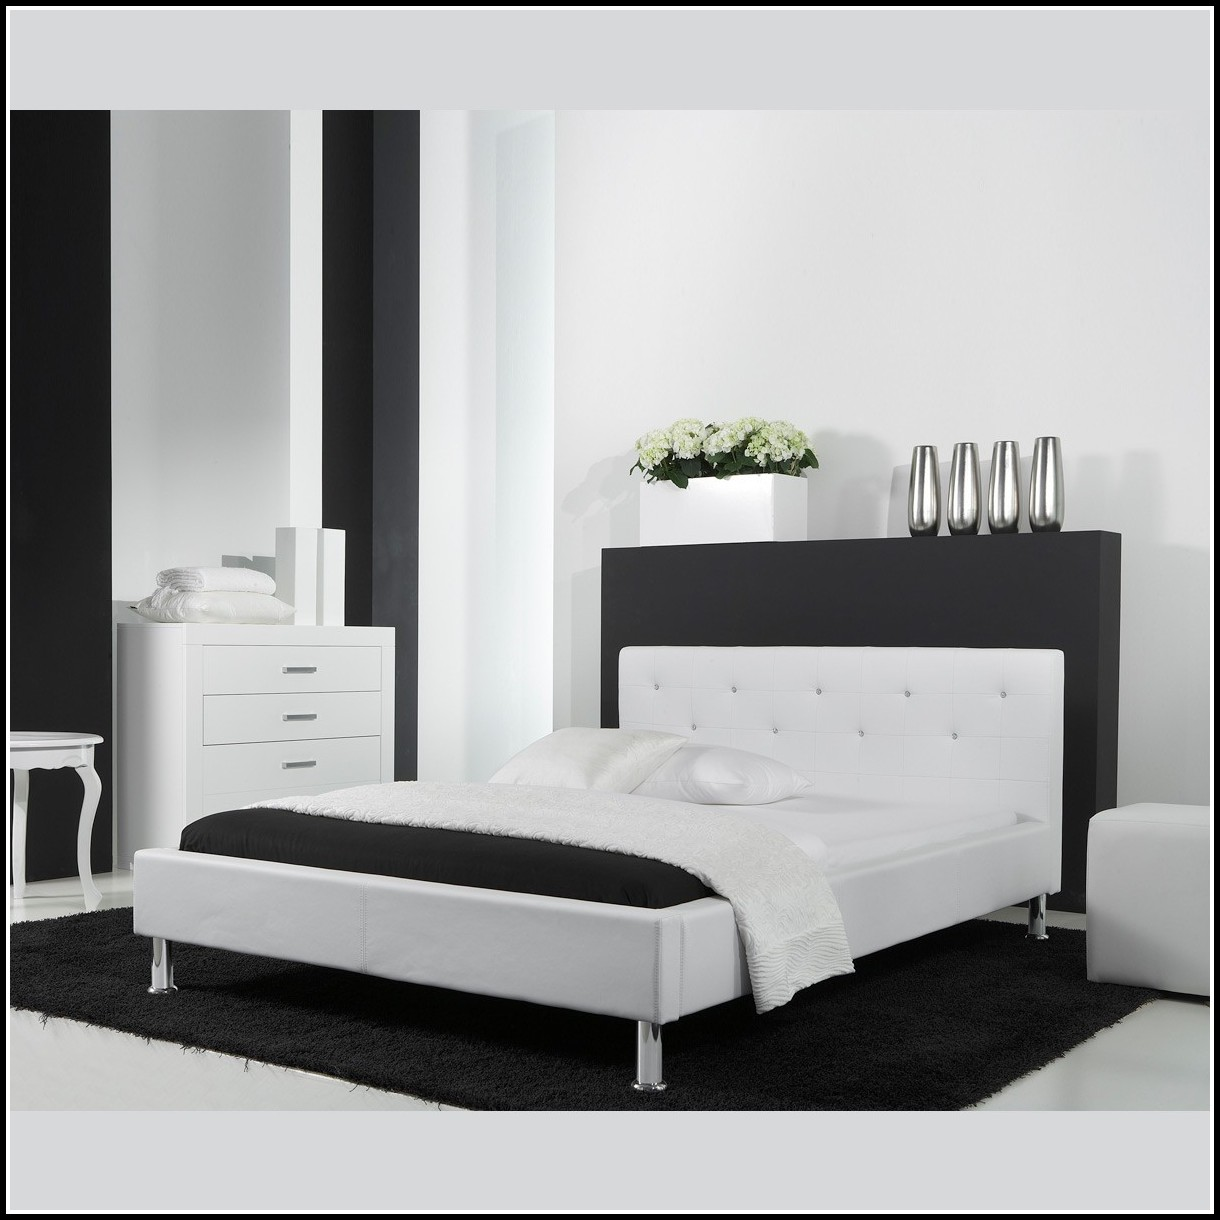 kunstleder bett 140x200 mit bettkasten download page beste wohnideen galerie. Black Bedroom Furniture Sets. Home Design Ideas